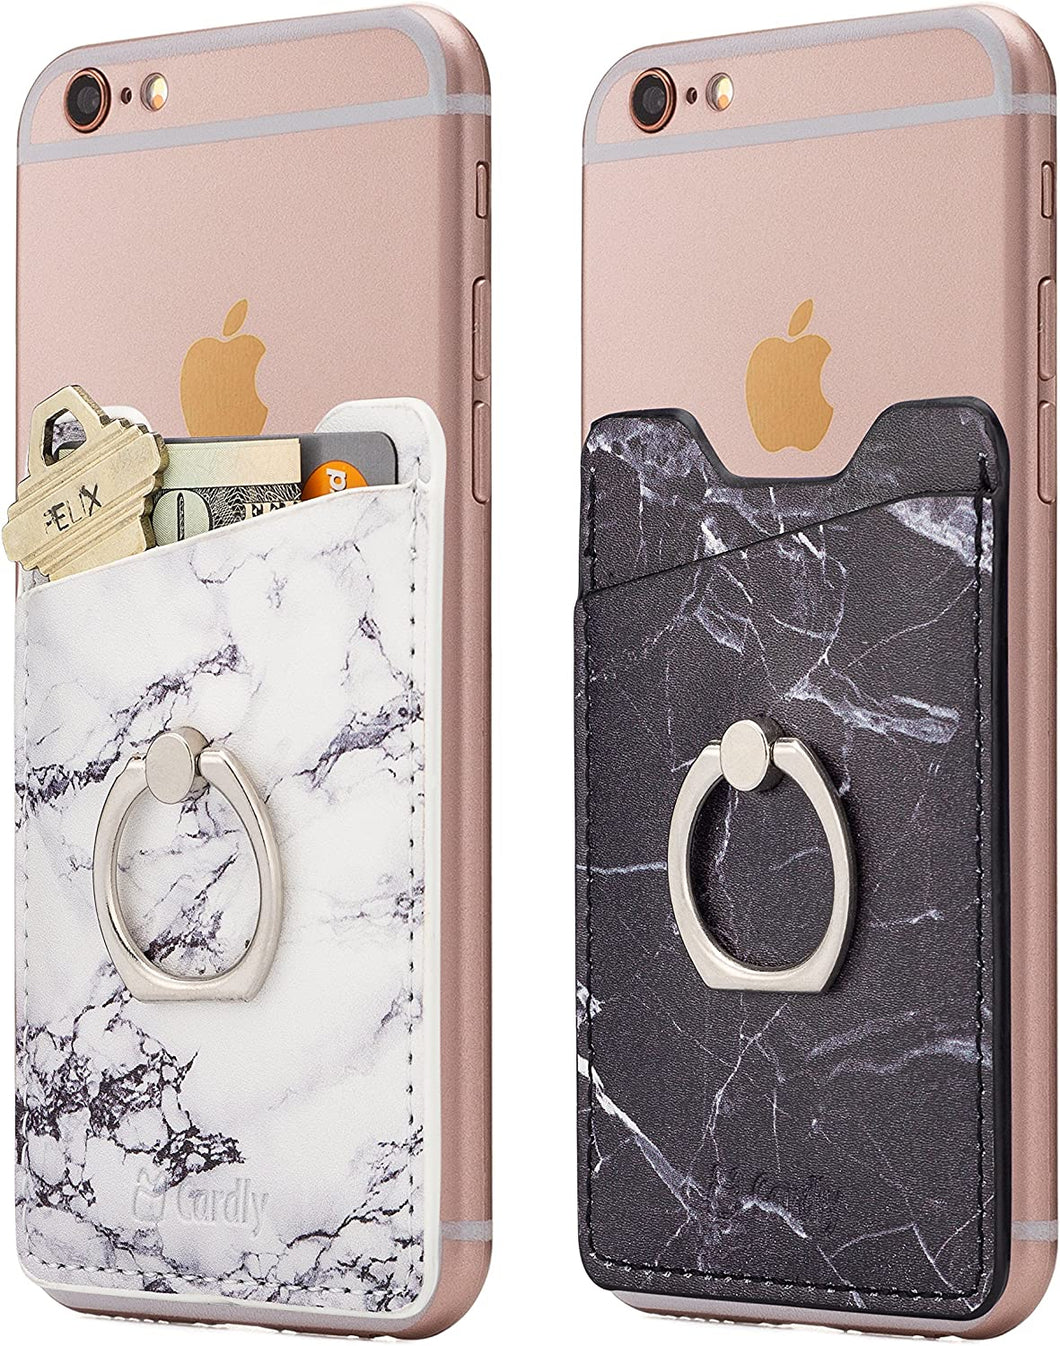 Cardly (Two) Finger Ring and Cell Phone Stick on Wallet Card Holder Phone Pocket for iPhone, Android and All Smartphones.